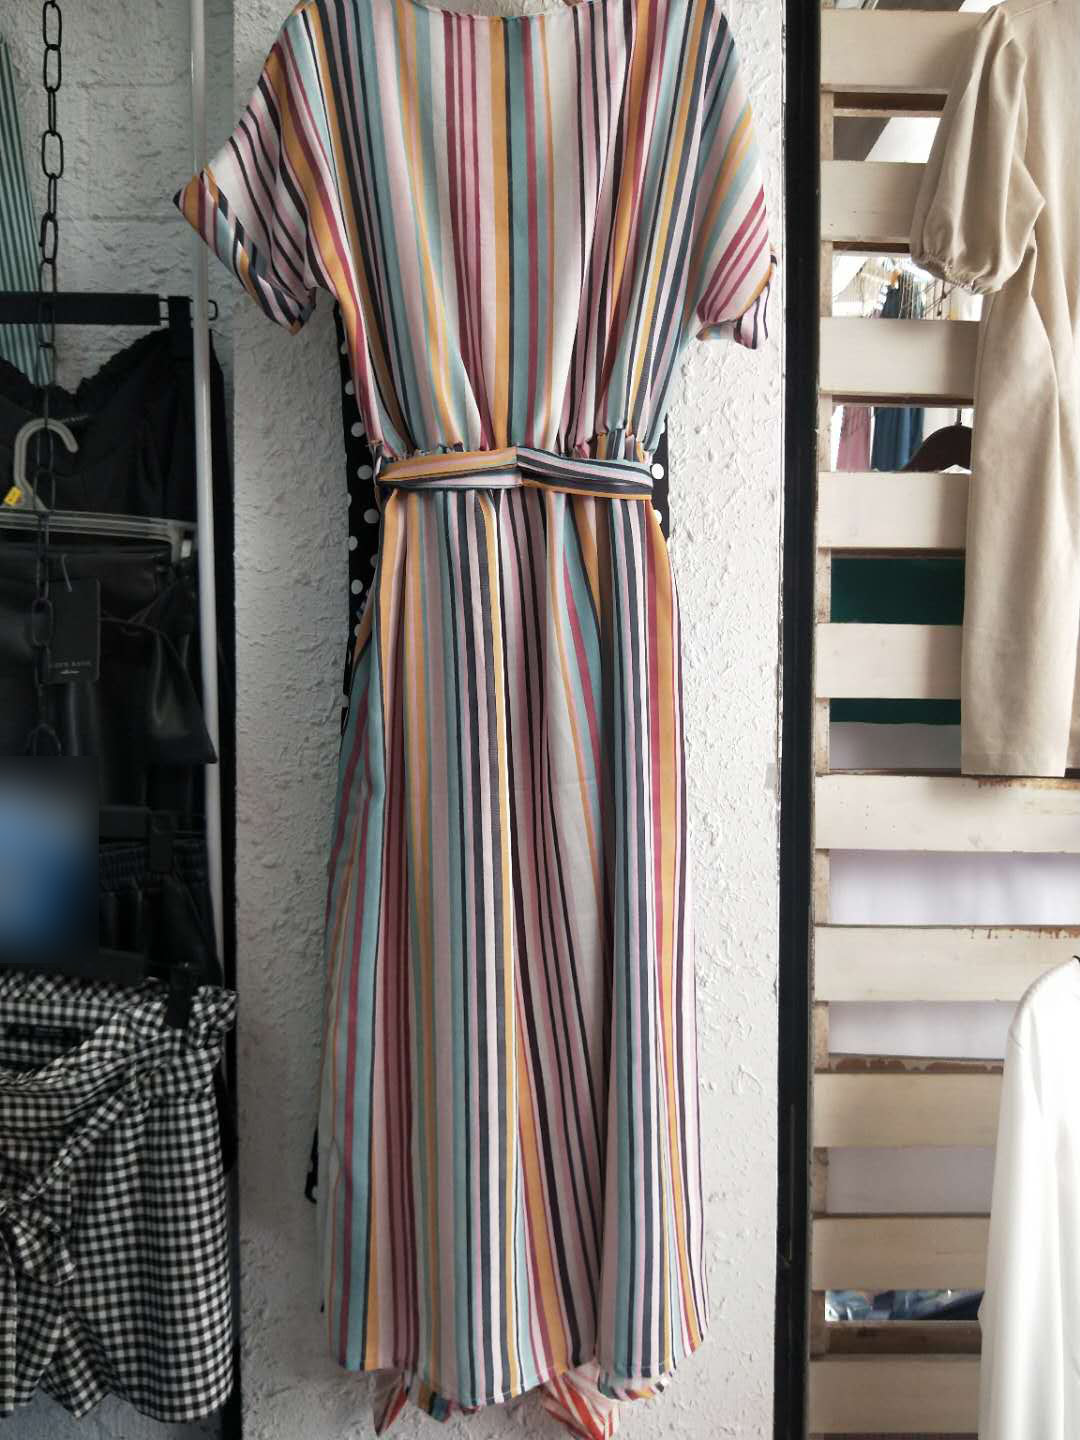 2018 Summer New Style WOMEN'S Dress Women's Stripes In The Long Version Of The Rainbow Dress 2751030 2751/030